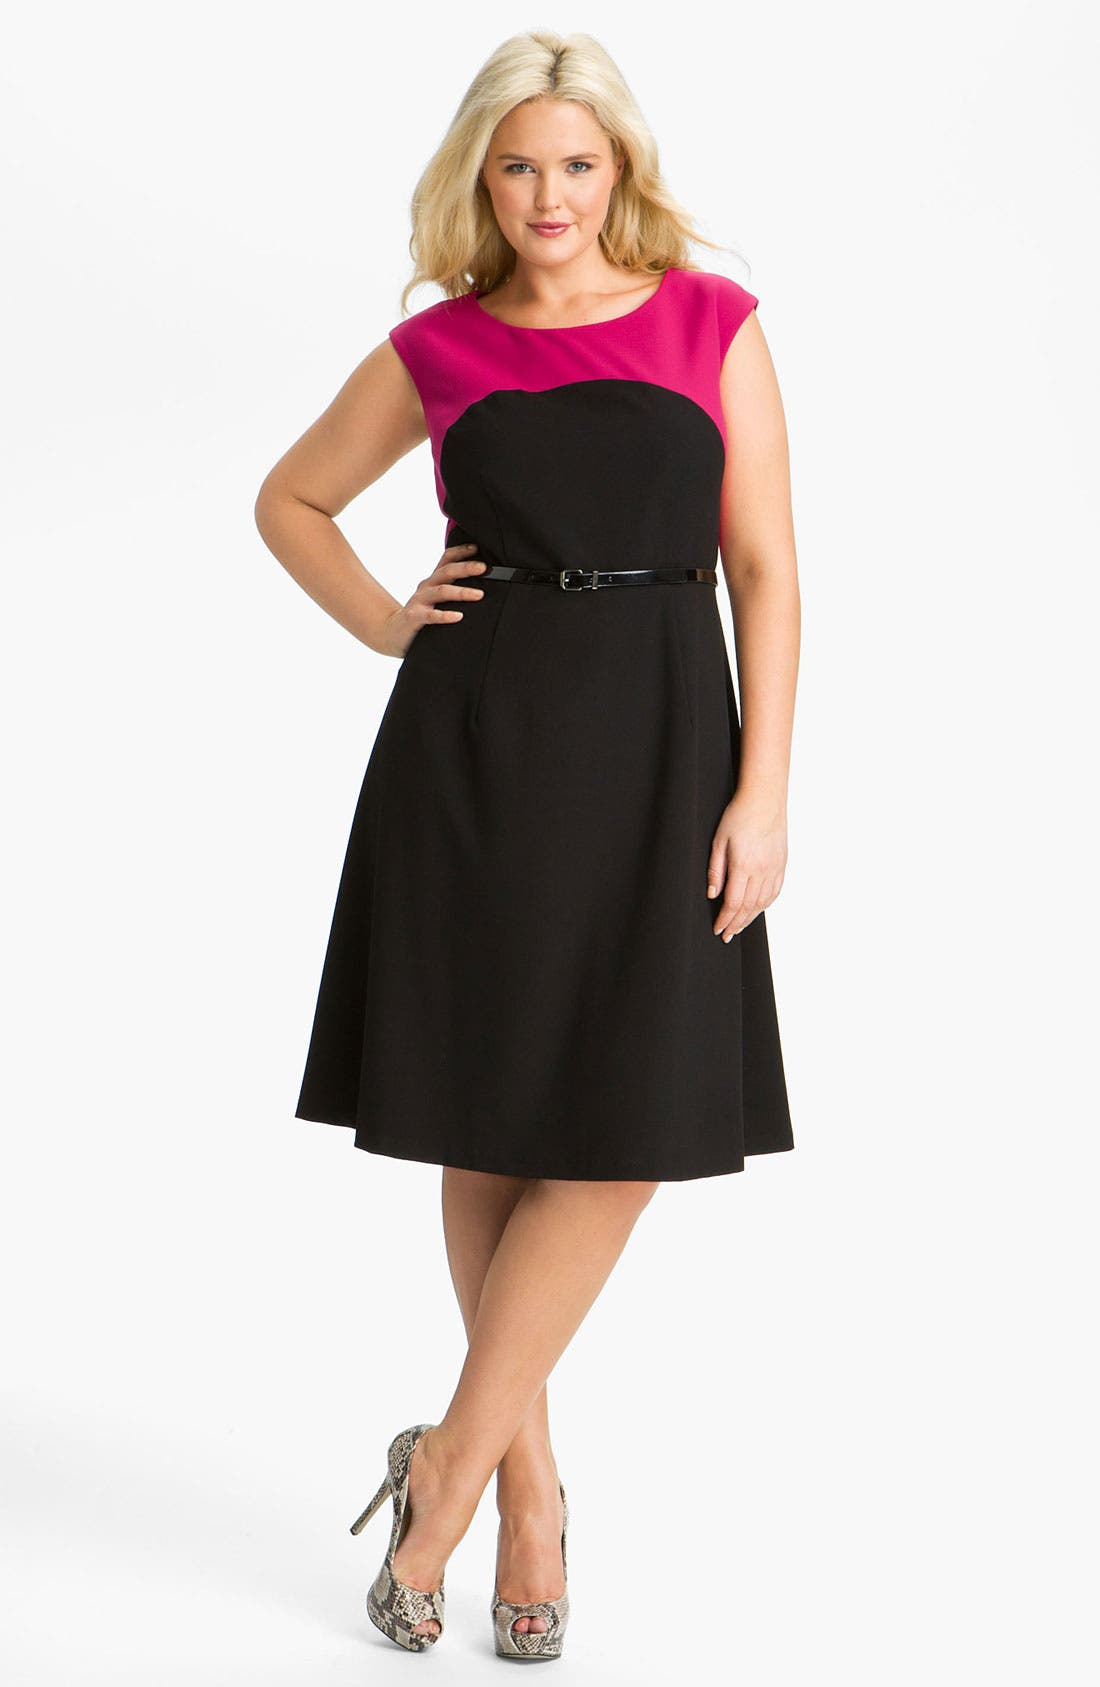 Alternate Image 1 Selected - Calvin Klein Belted Two Tone A-Line Dress (Plus)